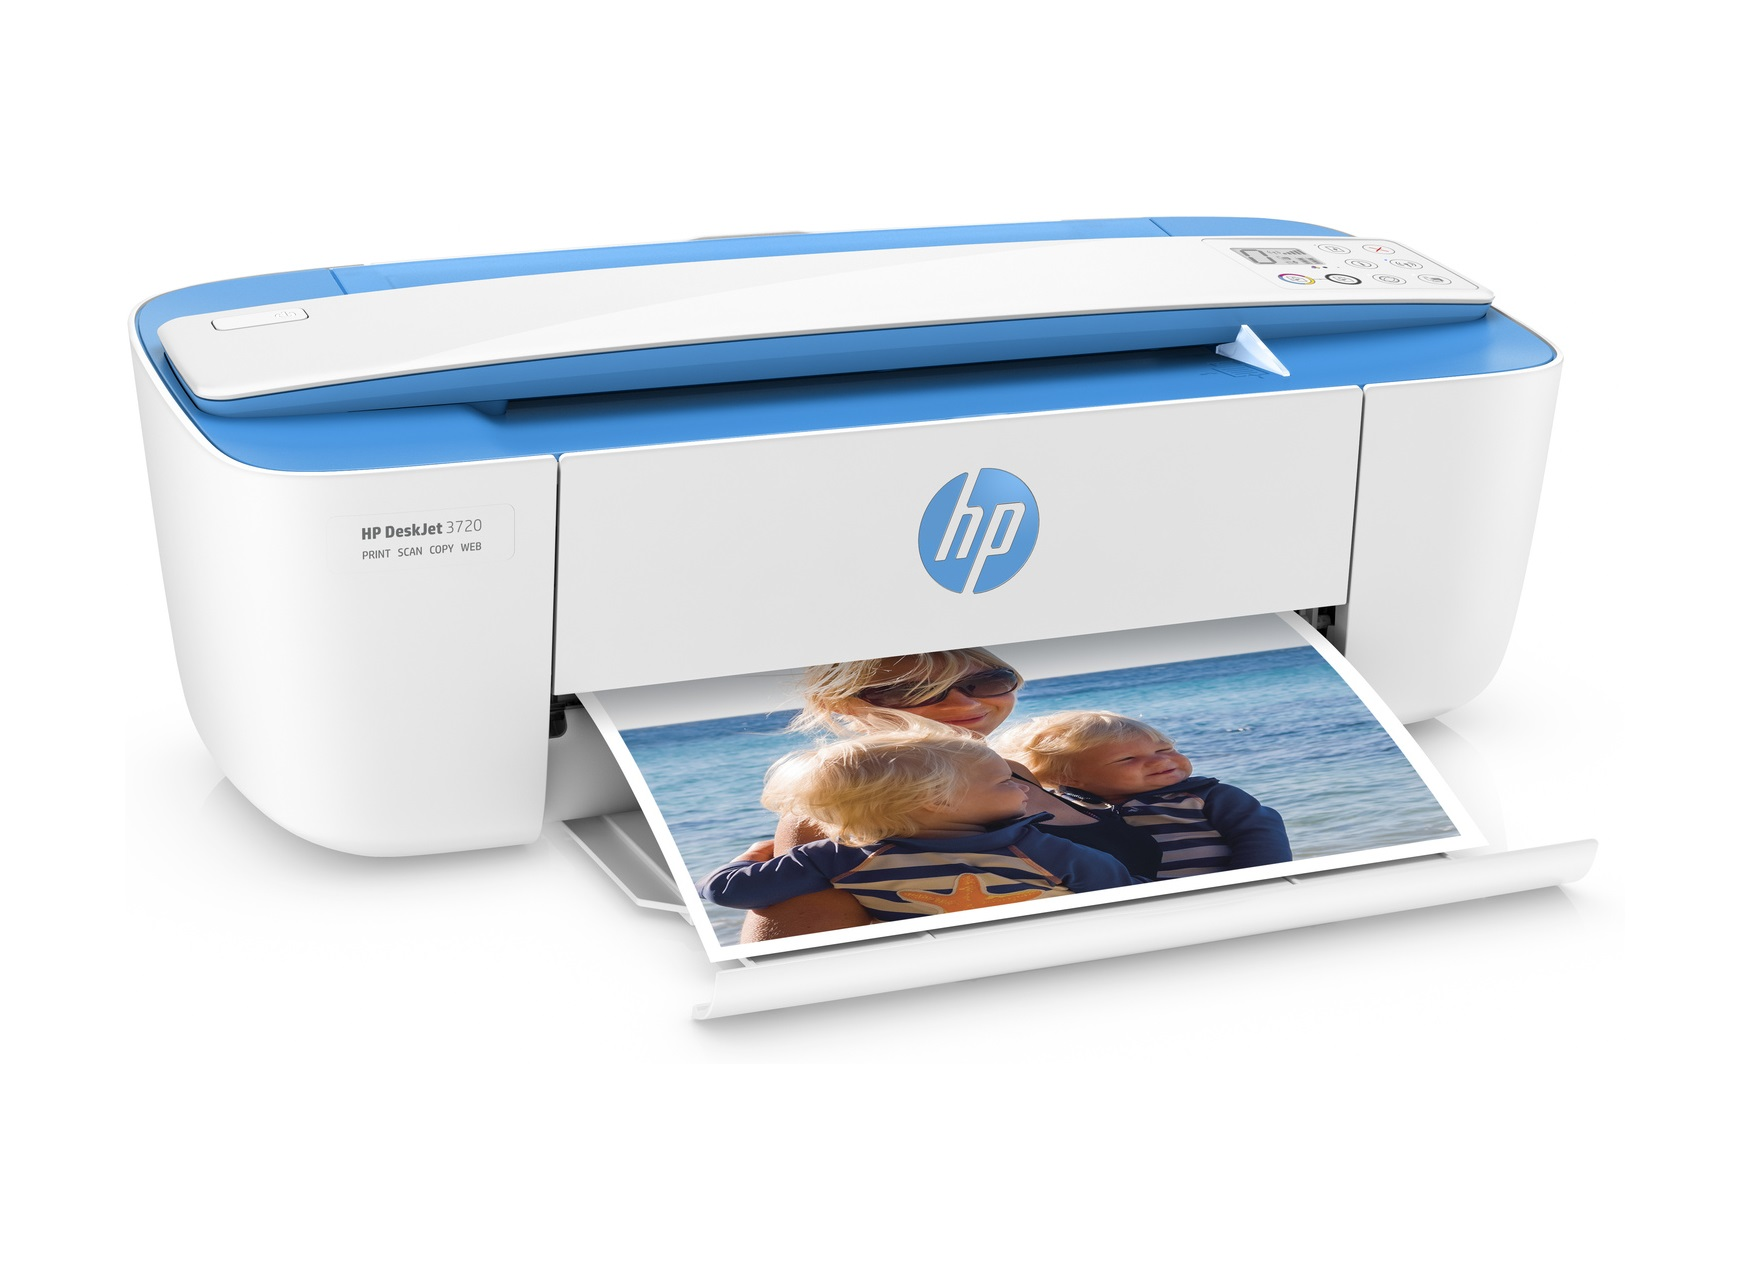 HP Deskjet 3720 Review: One of the Cheapest All-In-Ones But